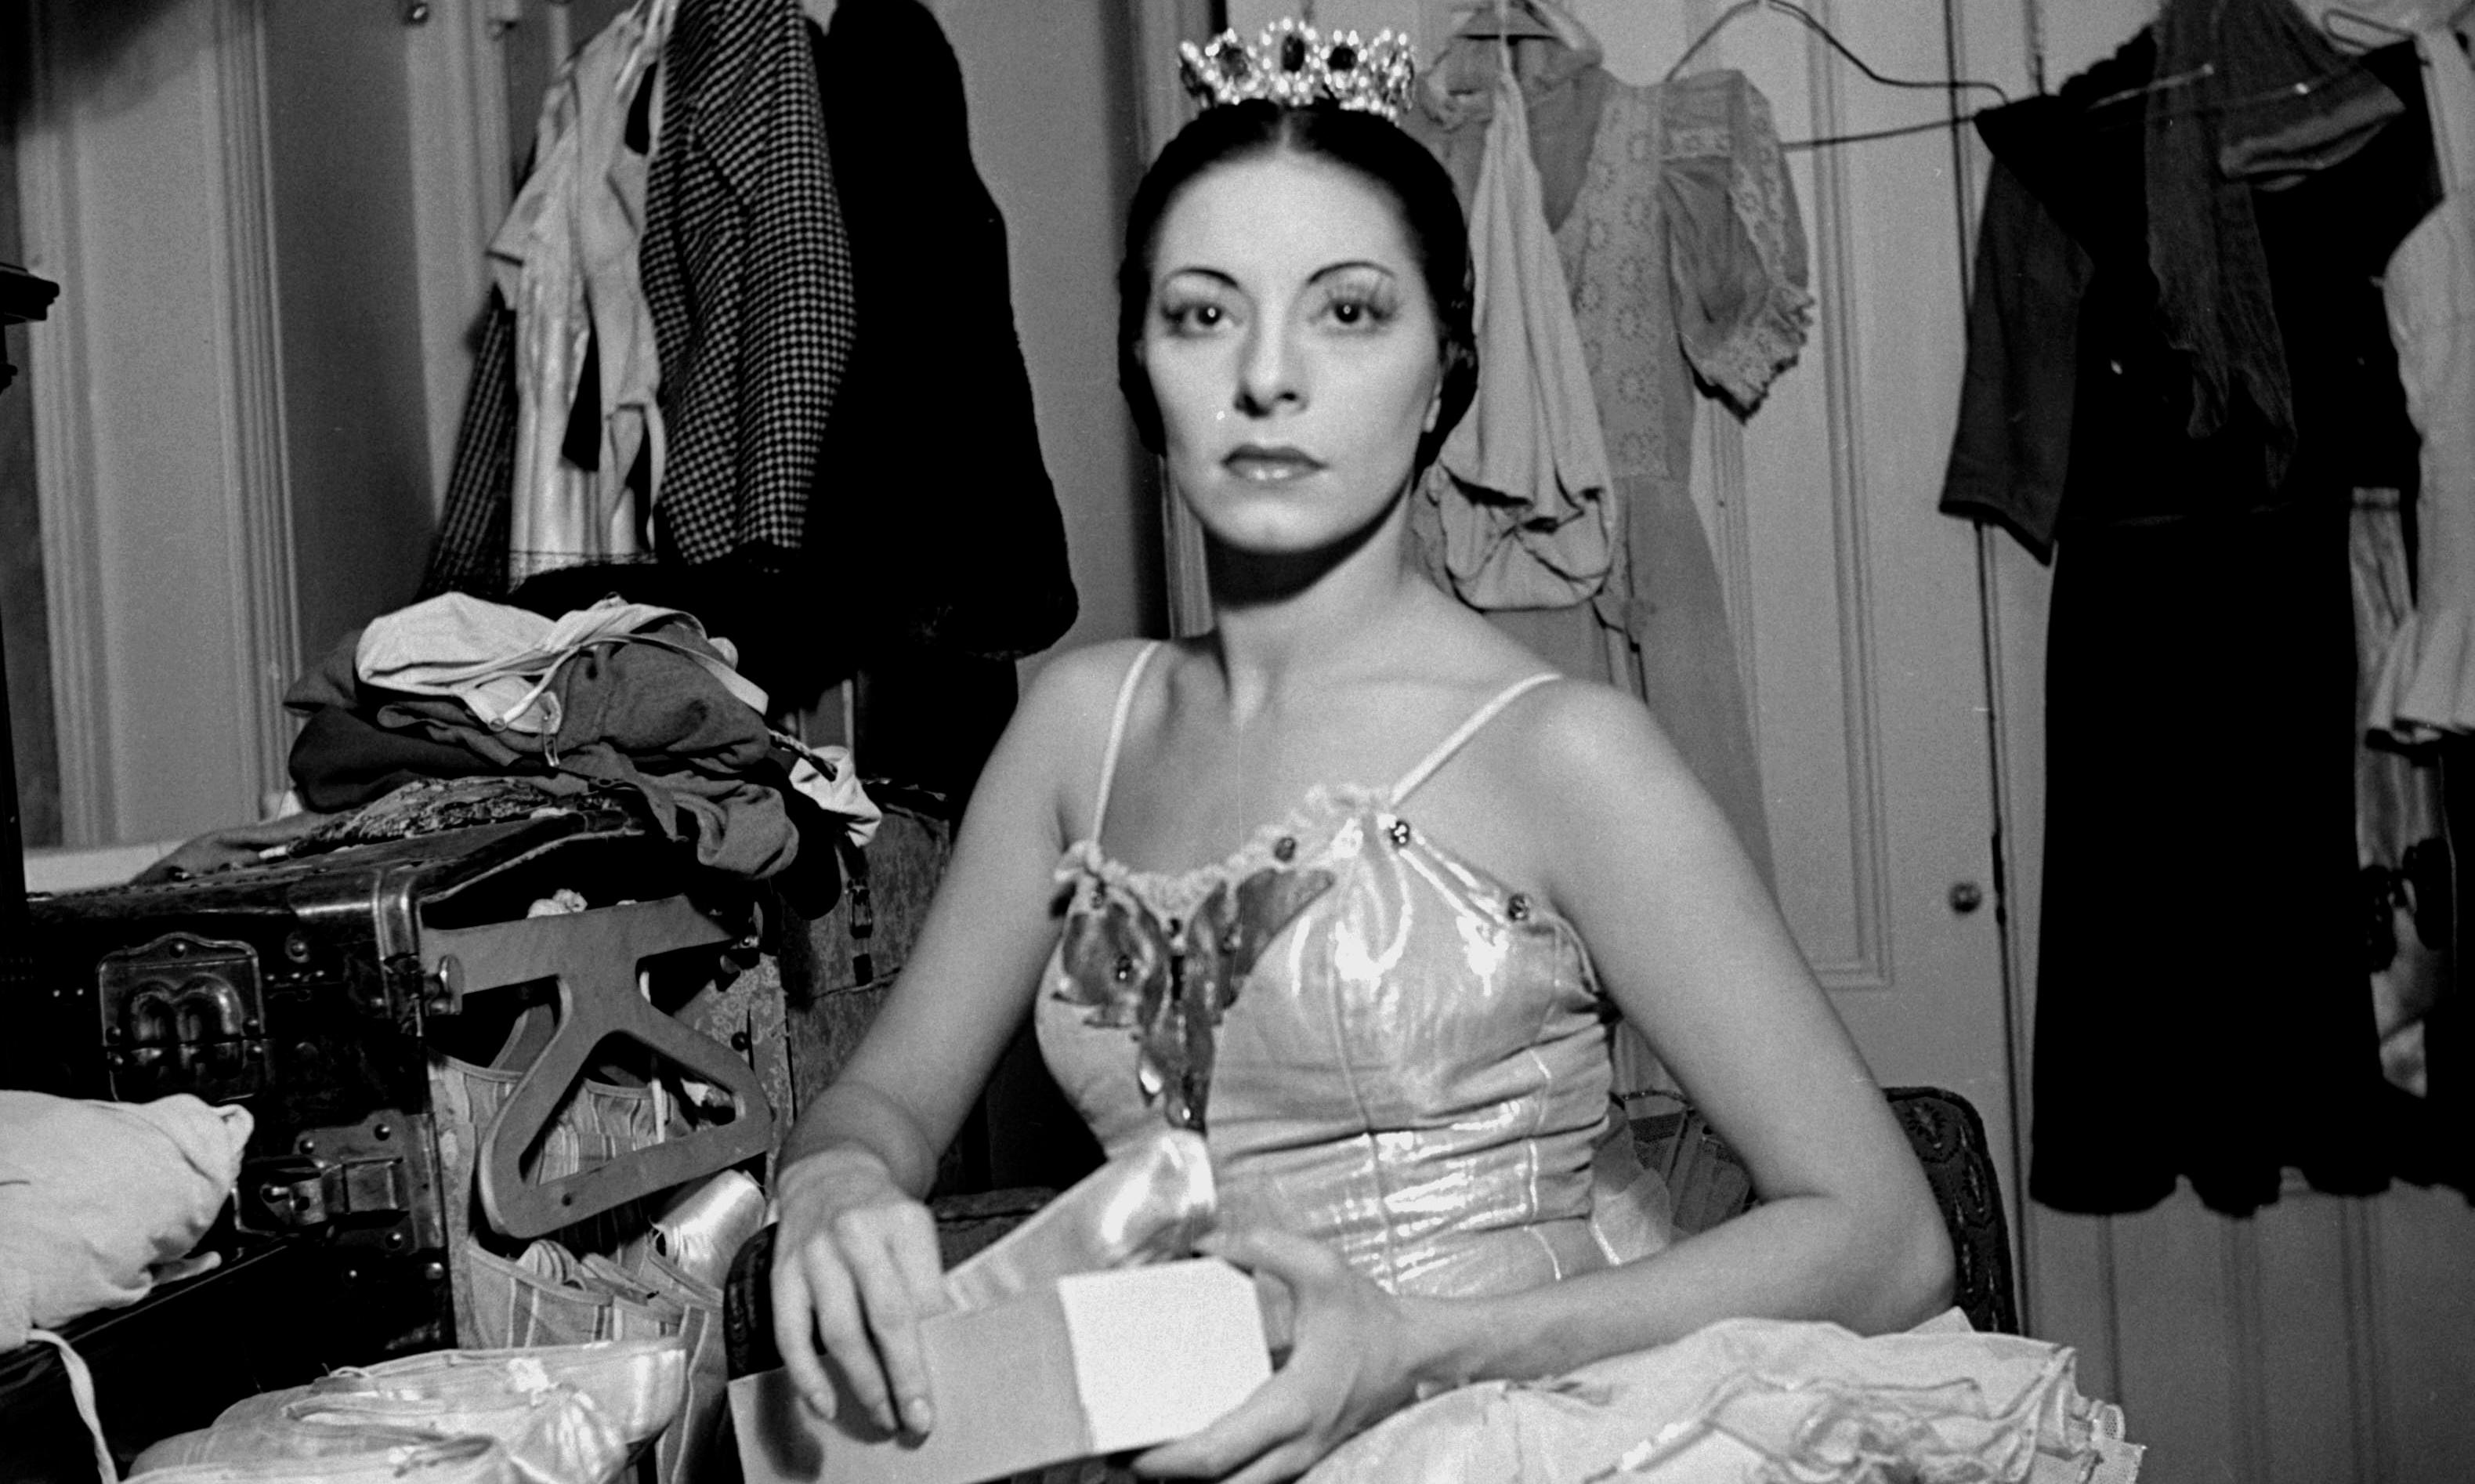 Cubans will never forget their ballerina Alicia Alonso